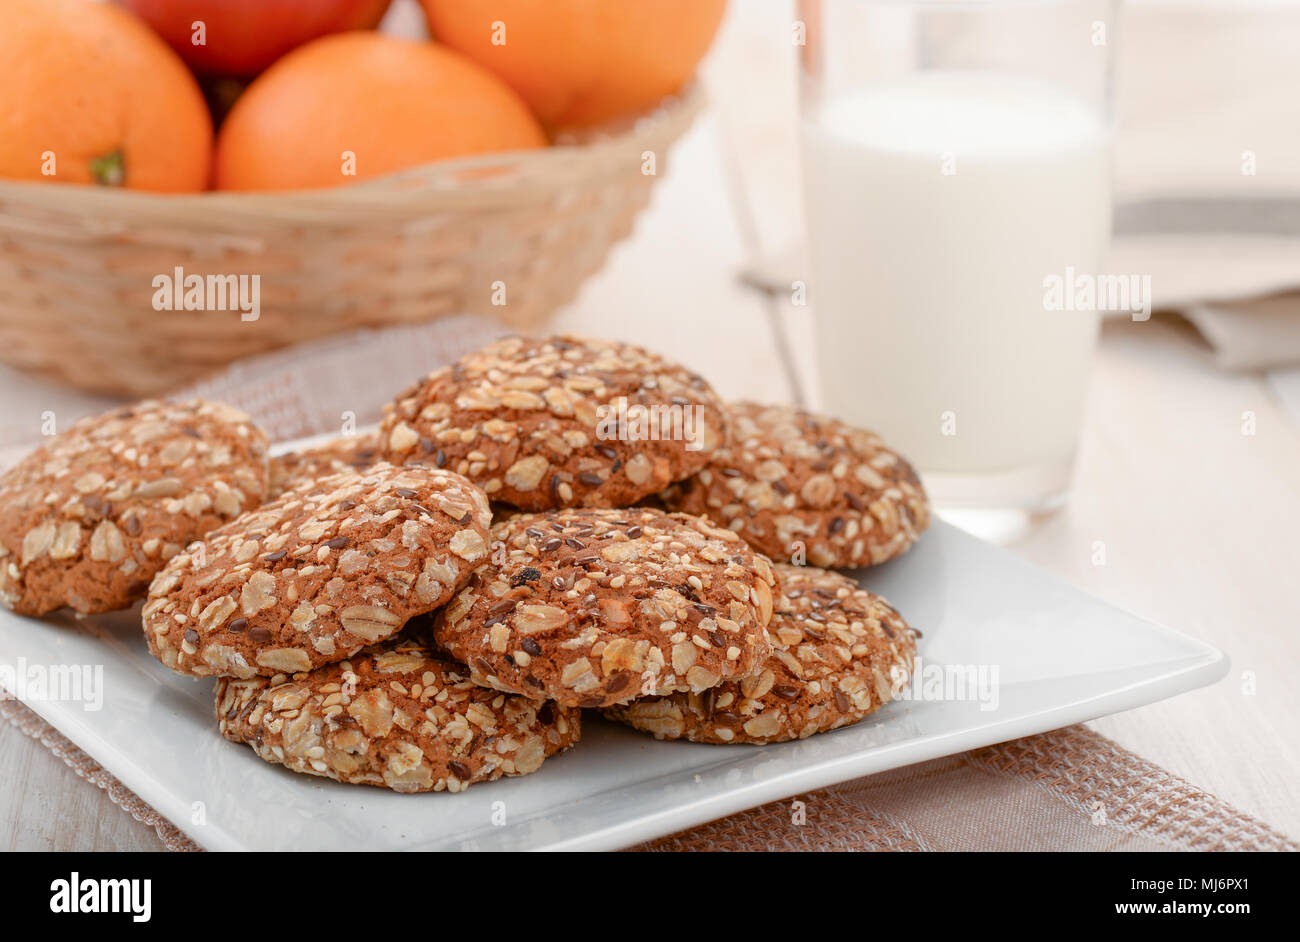 Still life with wholegrain cookies, milk and fruits - Stock Image